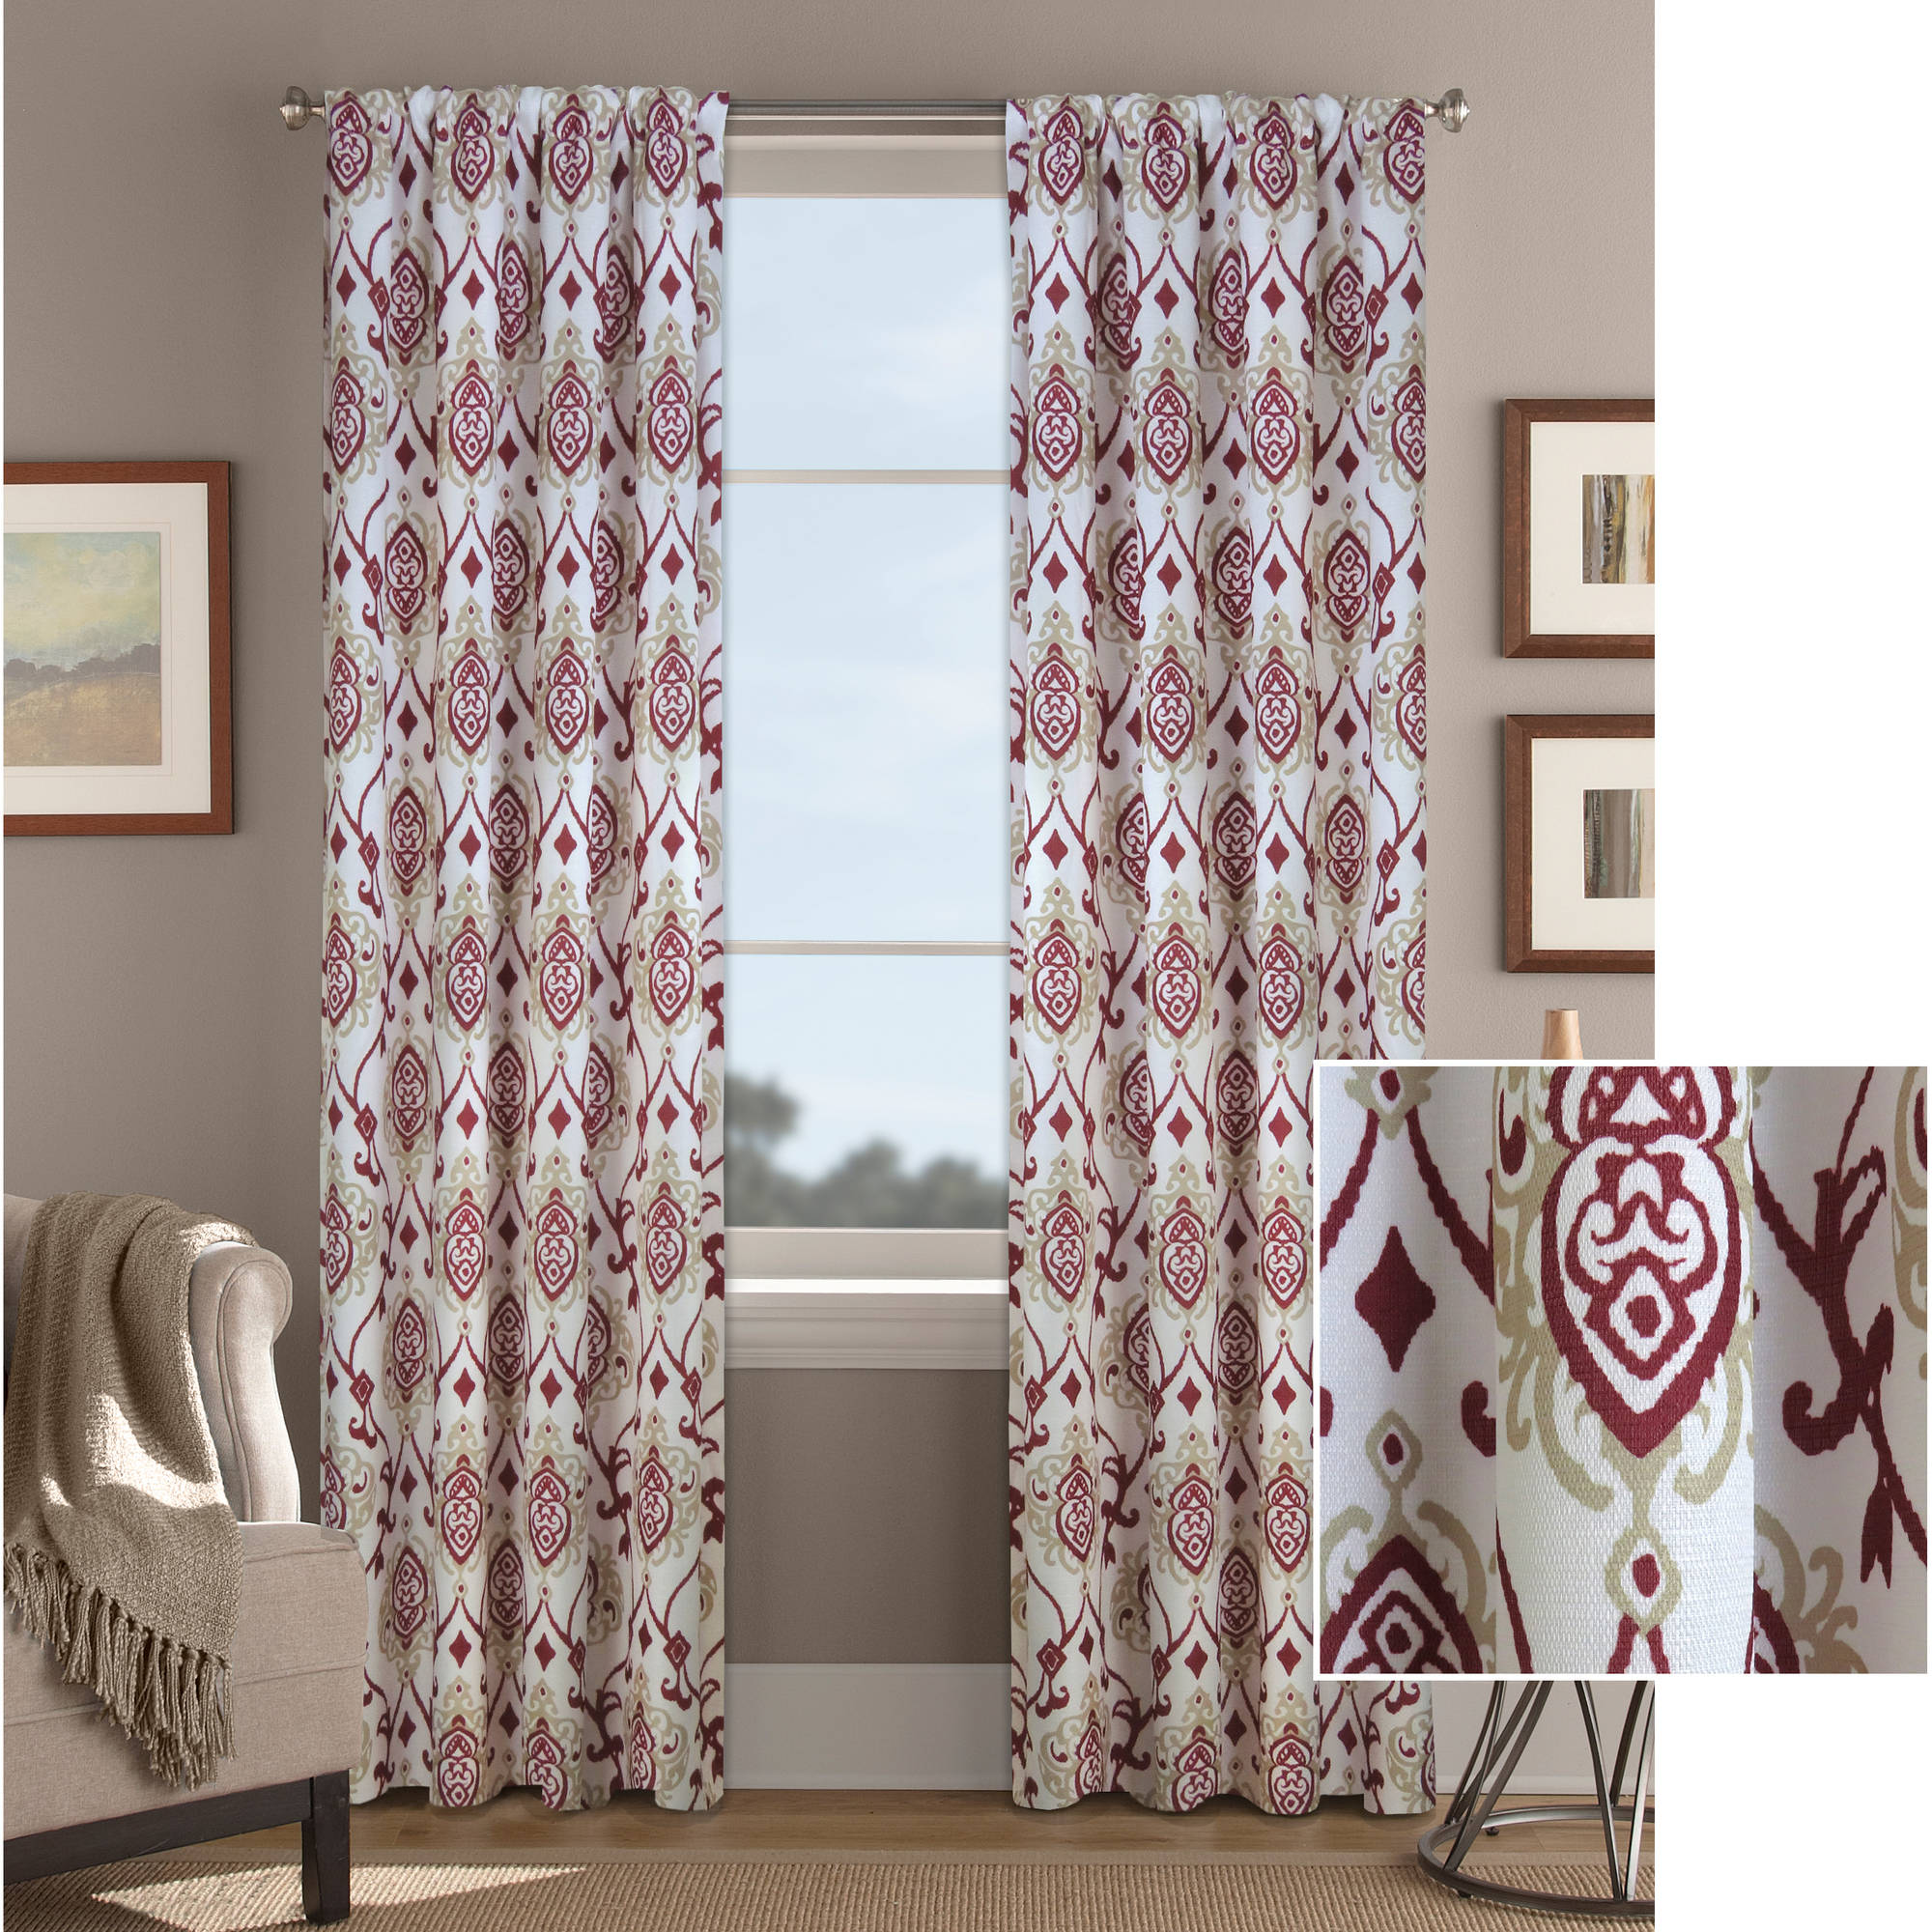 Better Homes and Gardens Damask Scroll Curtain Panel